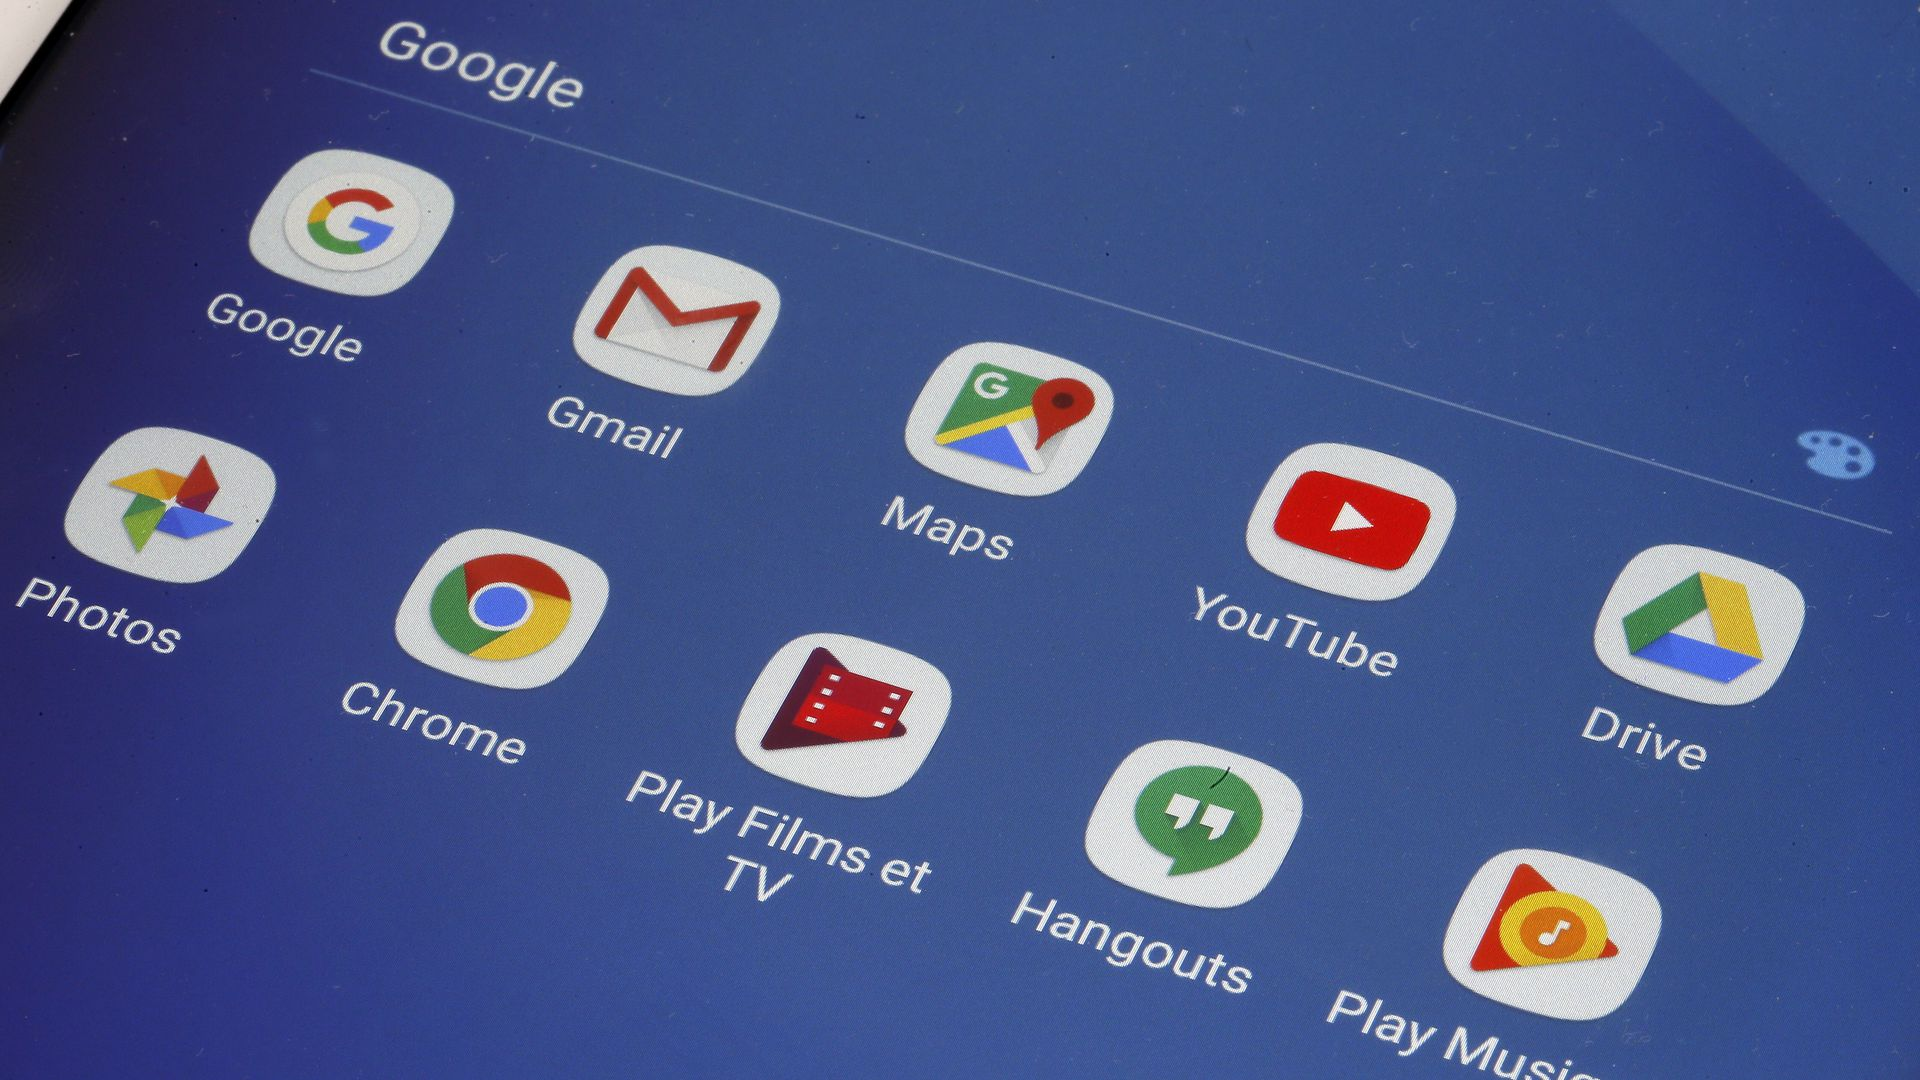 Google suite apps including youtube, chrome, hangouts, gmail etc.